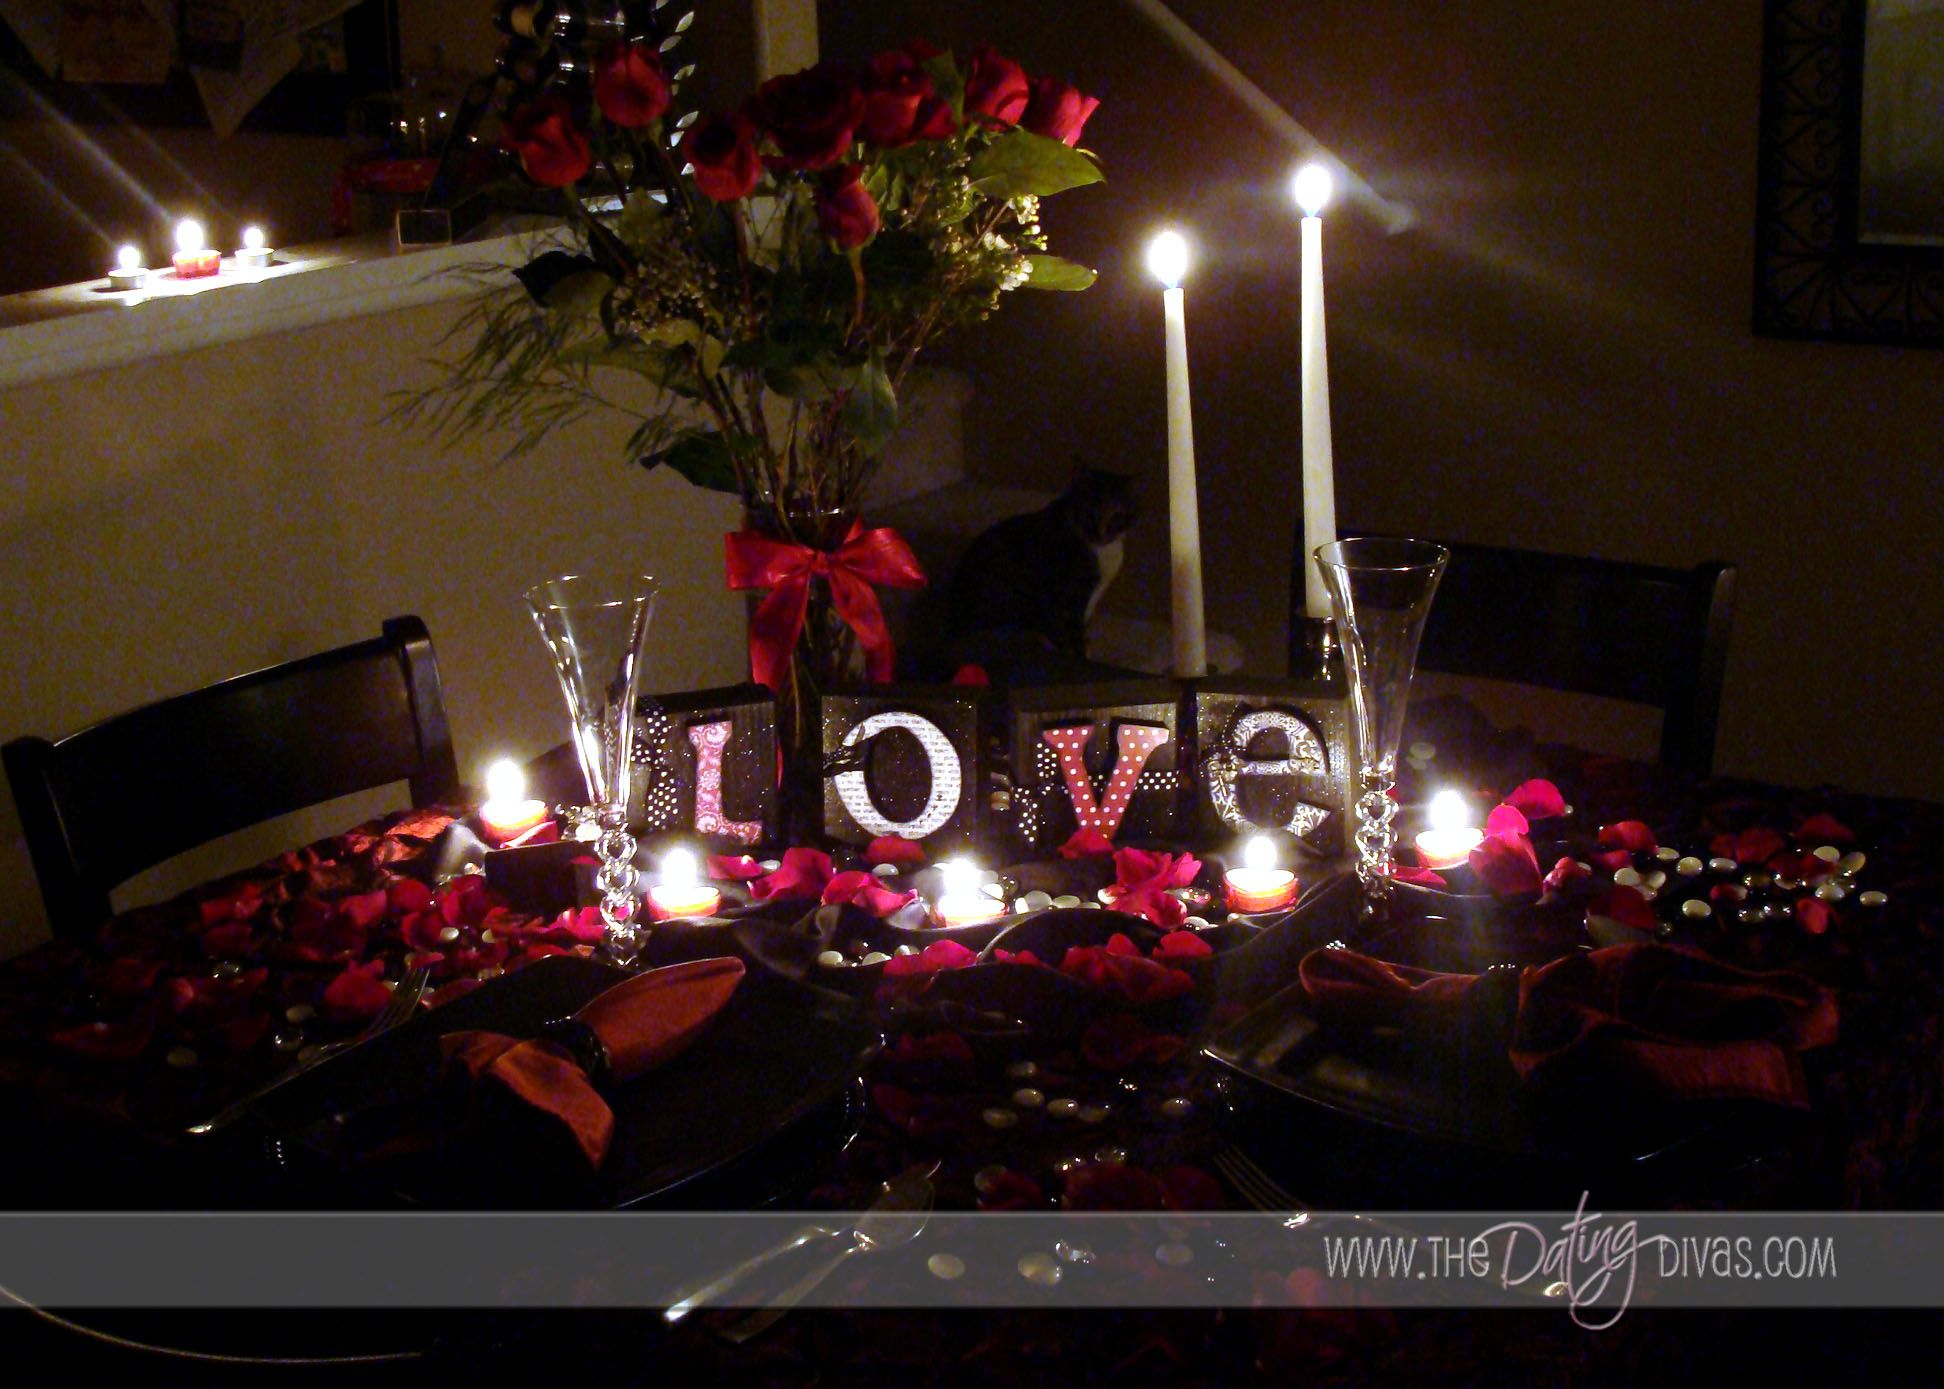 Romantic Dinner Ideas For Anniversary The Dating Divas Anniversary Dinner Ideas Anniversary Decorations Anniversary Dinner